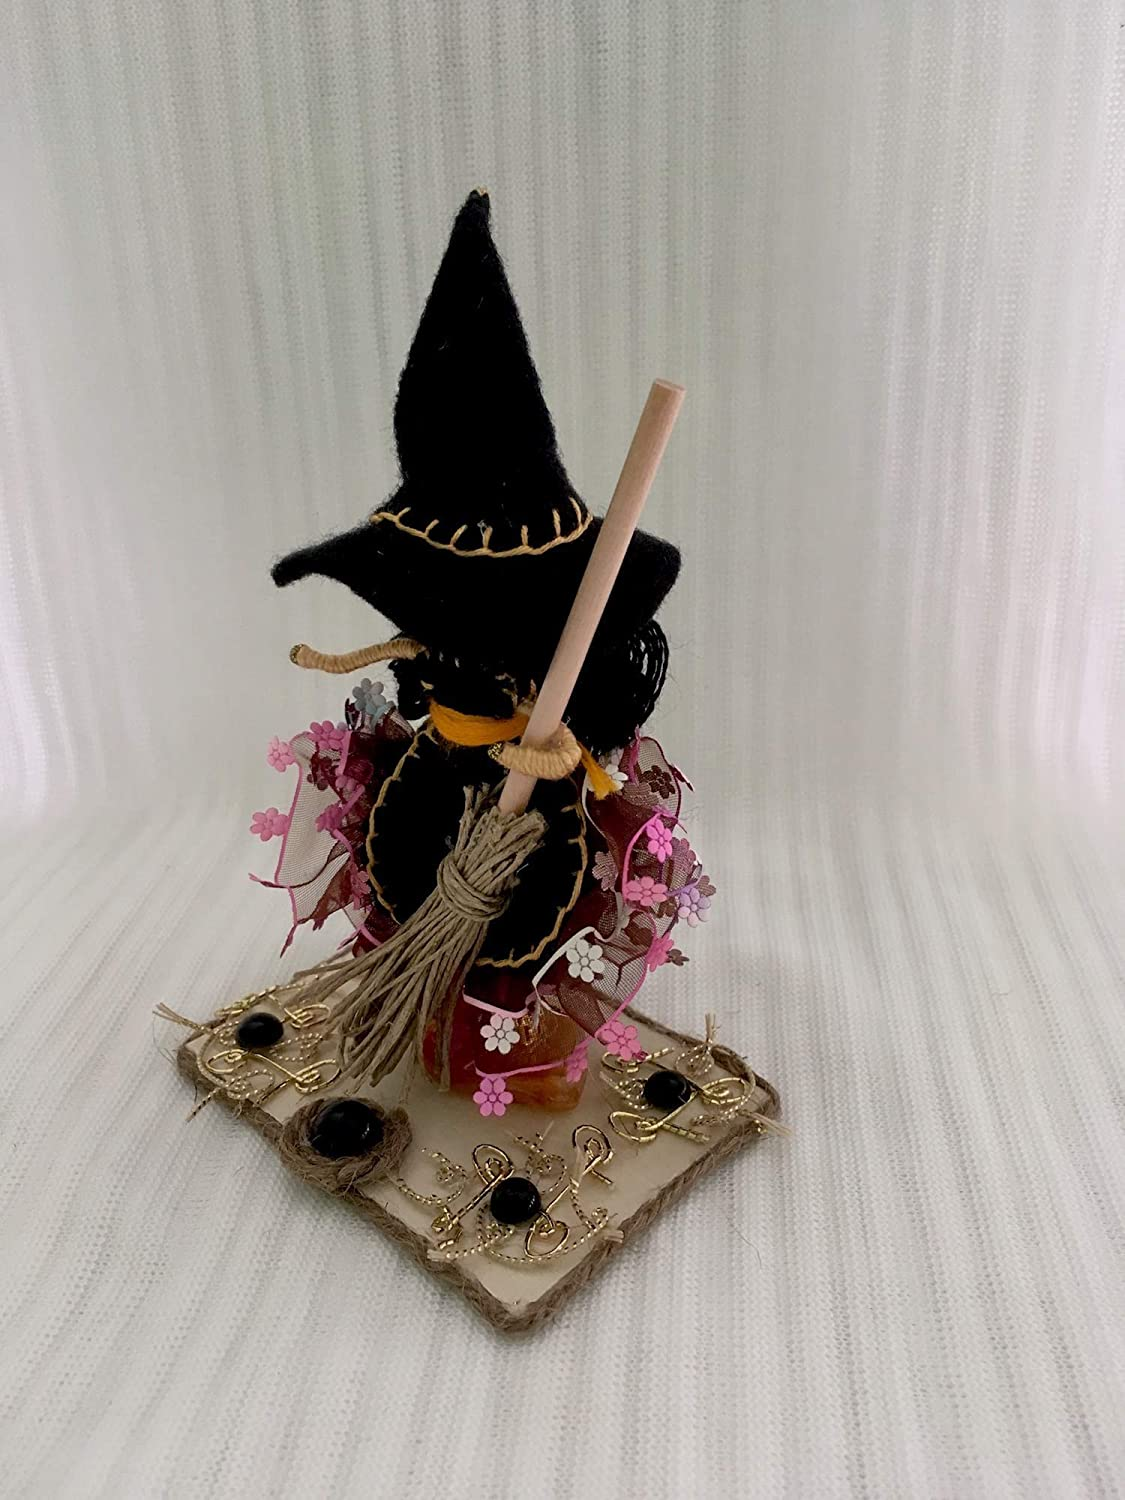 Kitchen Hag Felt Cottage Witch Standing Doll Home Decor Rustic Style Fairy Figurine Witch with broom Interior Art Doll Halloween Good luck kitchen witch doll